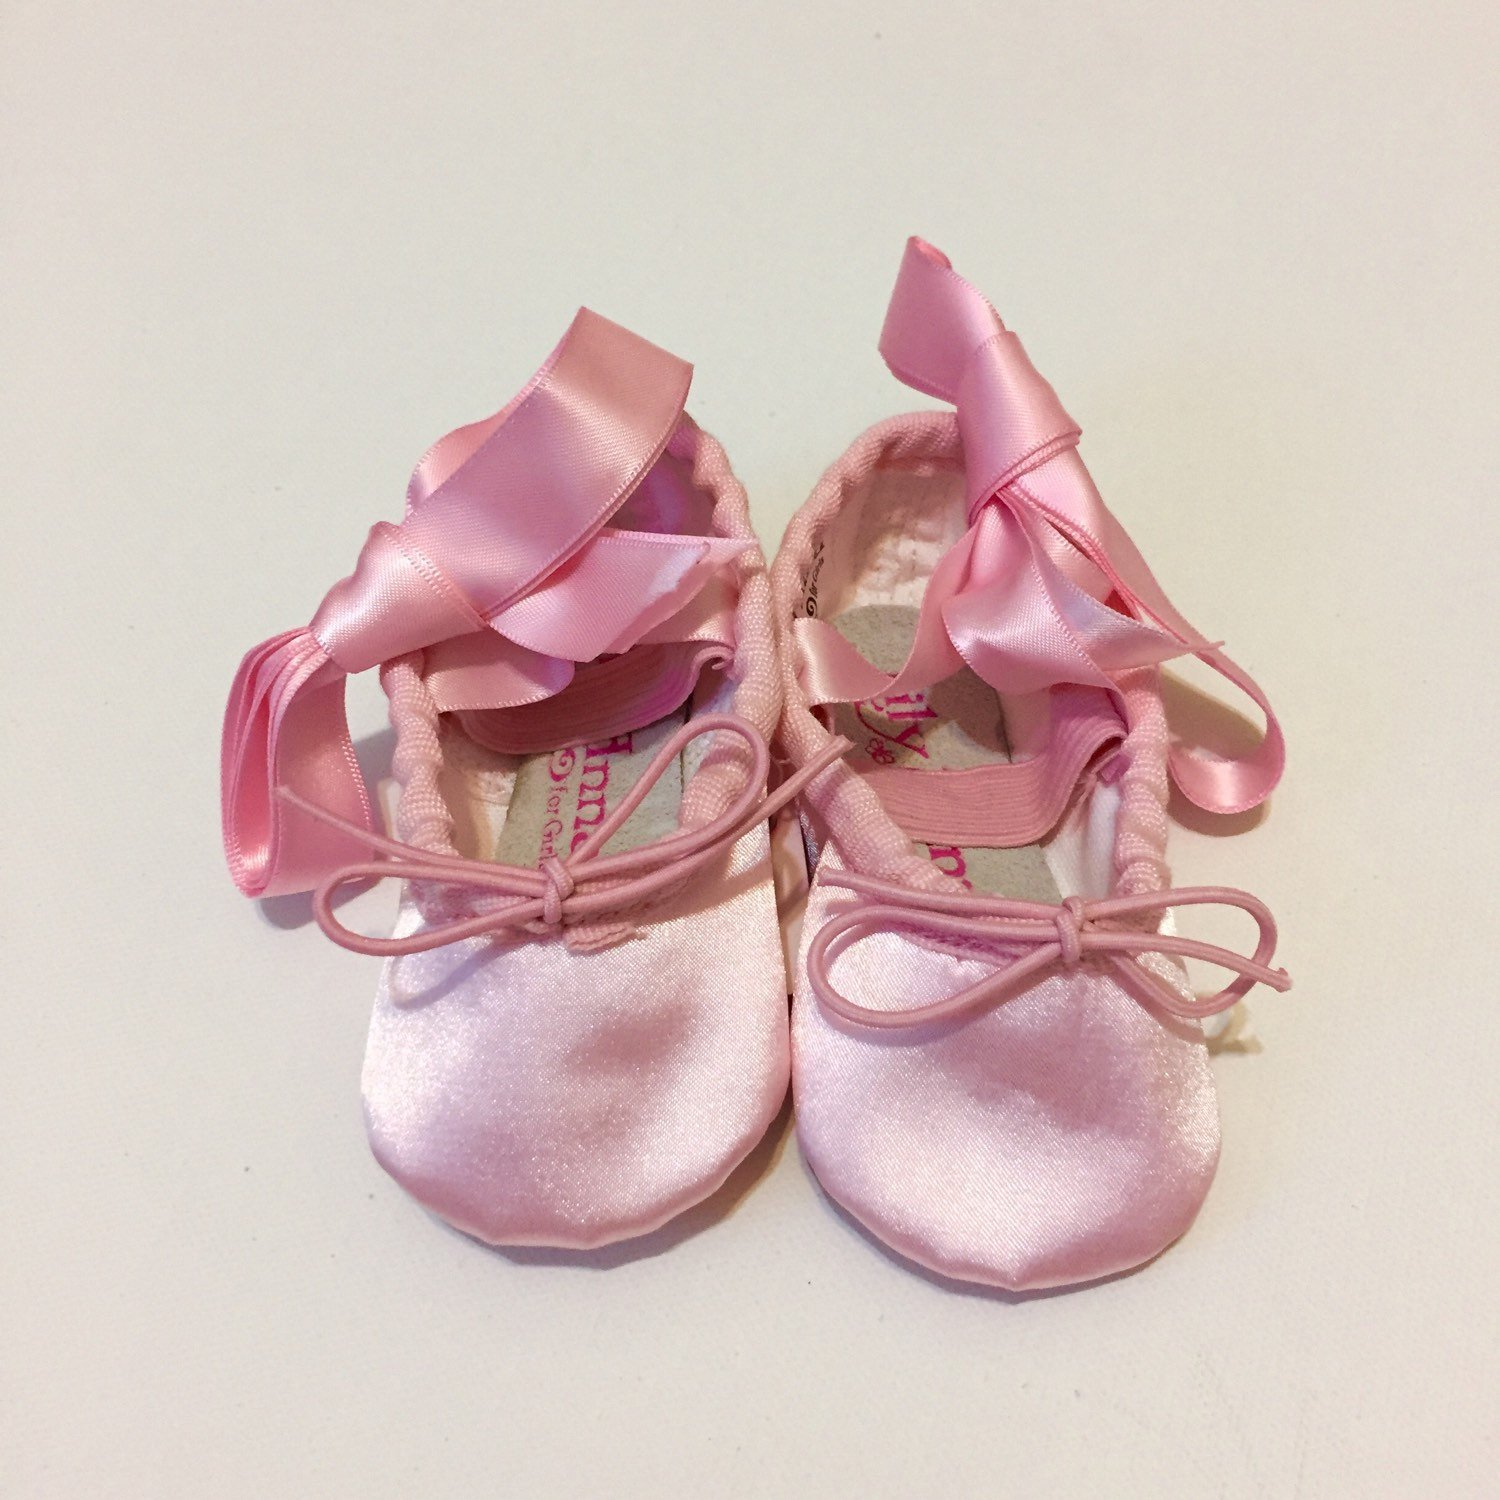 Pink Ballet Shoes Satin Flowergirl Slippers with Ribbons Infant Toddler Child Birthday Present Baby Shower Gift Ideas Costume Photo Prop Set